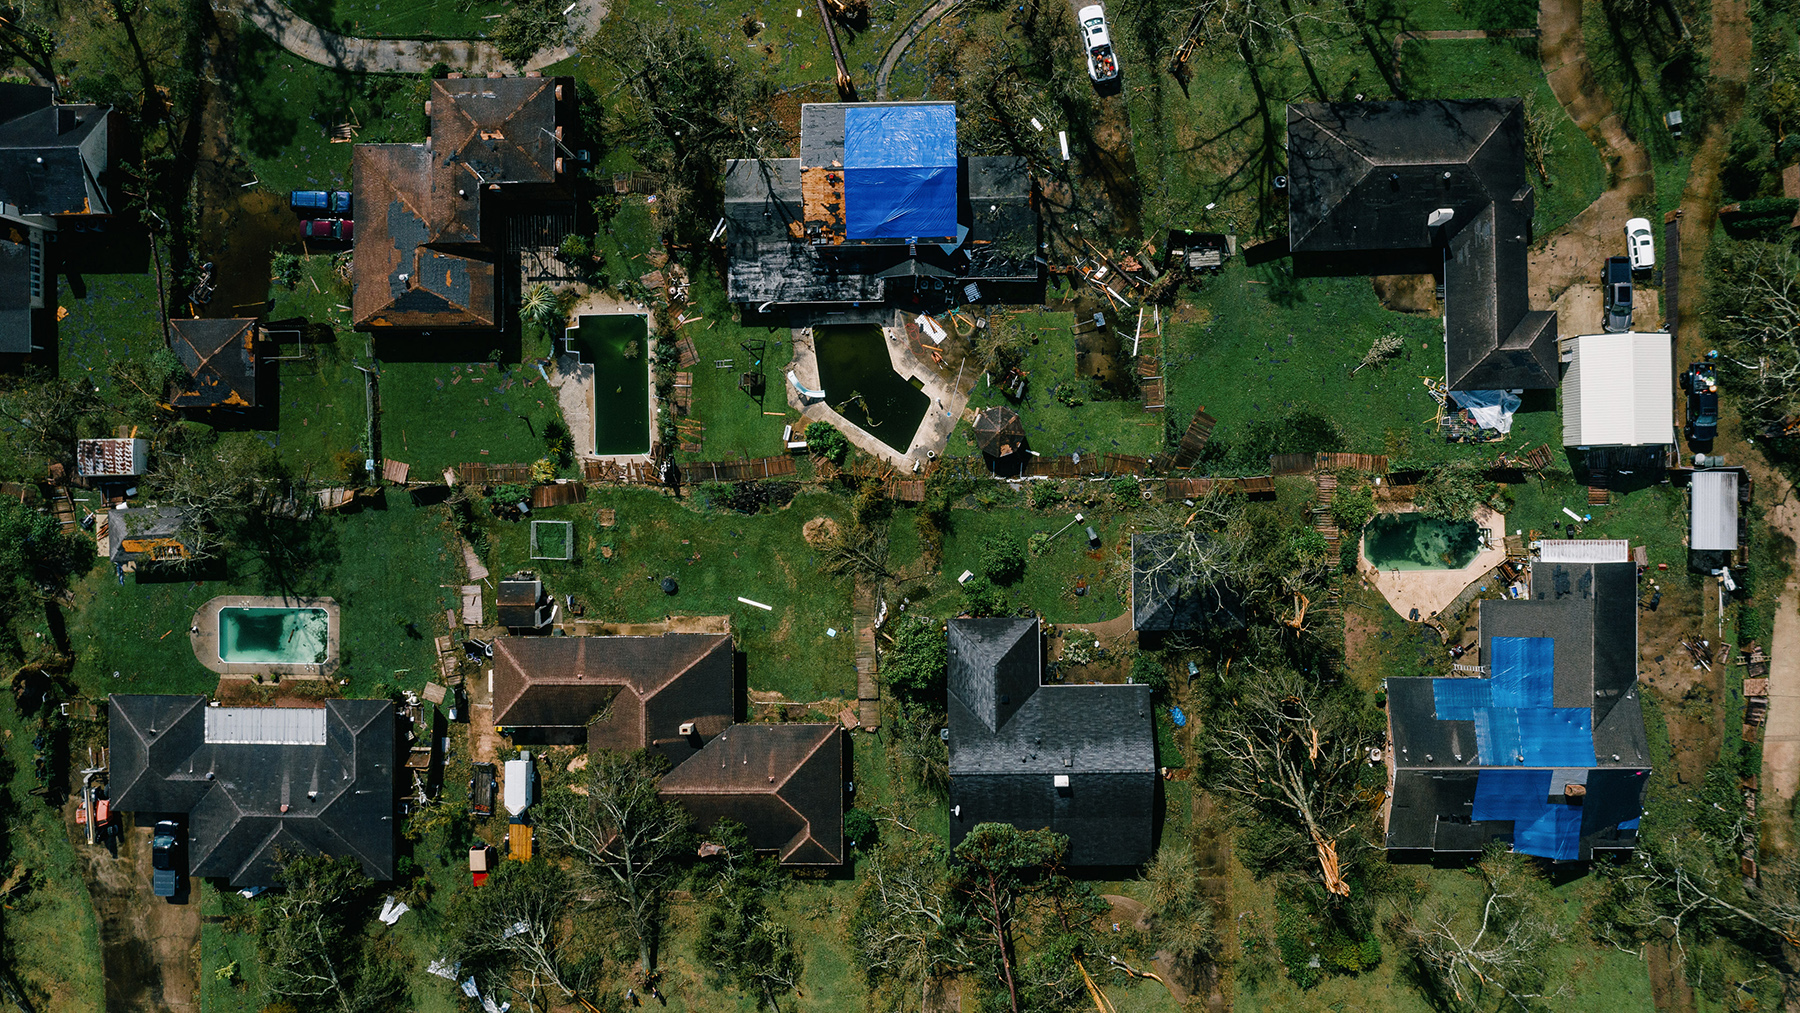 Downed trees near houses damaged after Hurricane Laura made landfall in this aerial photograph taken over Lake Charles, Louisiana, on Friday, Aug. 28, 2020. (Bryan Tarnowski/Bloomberg)